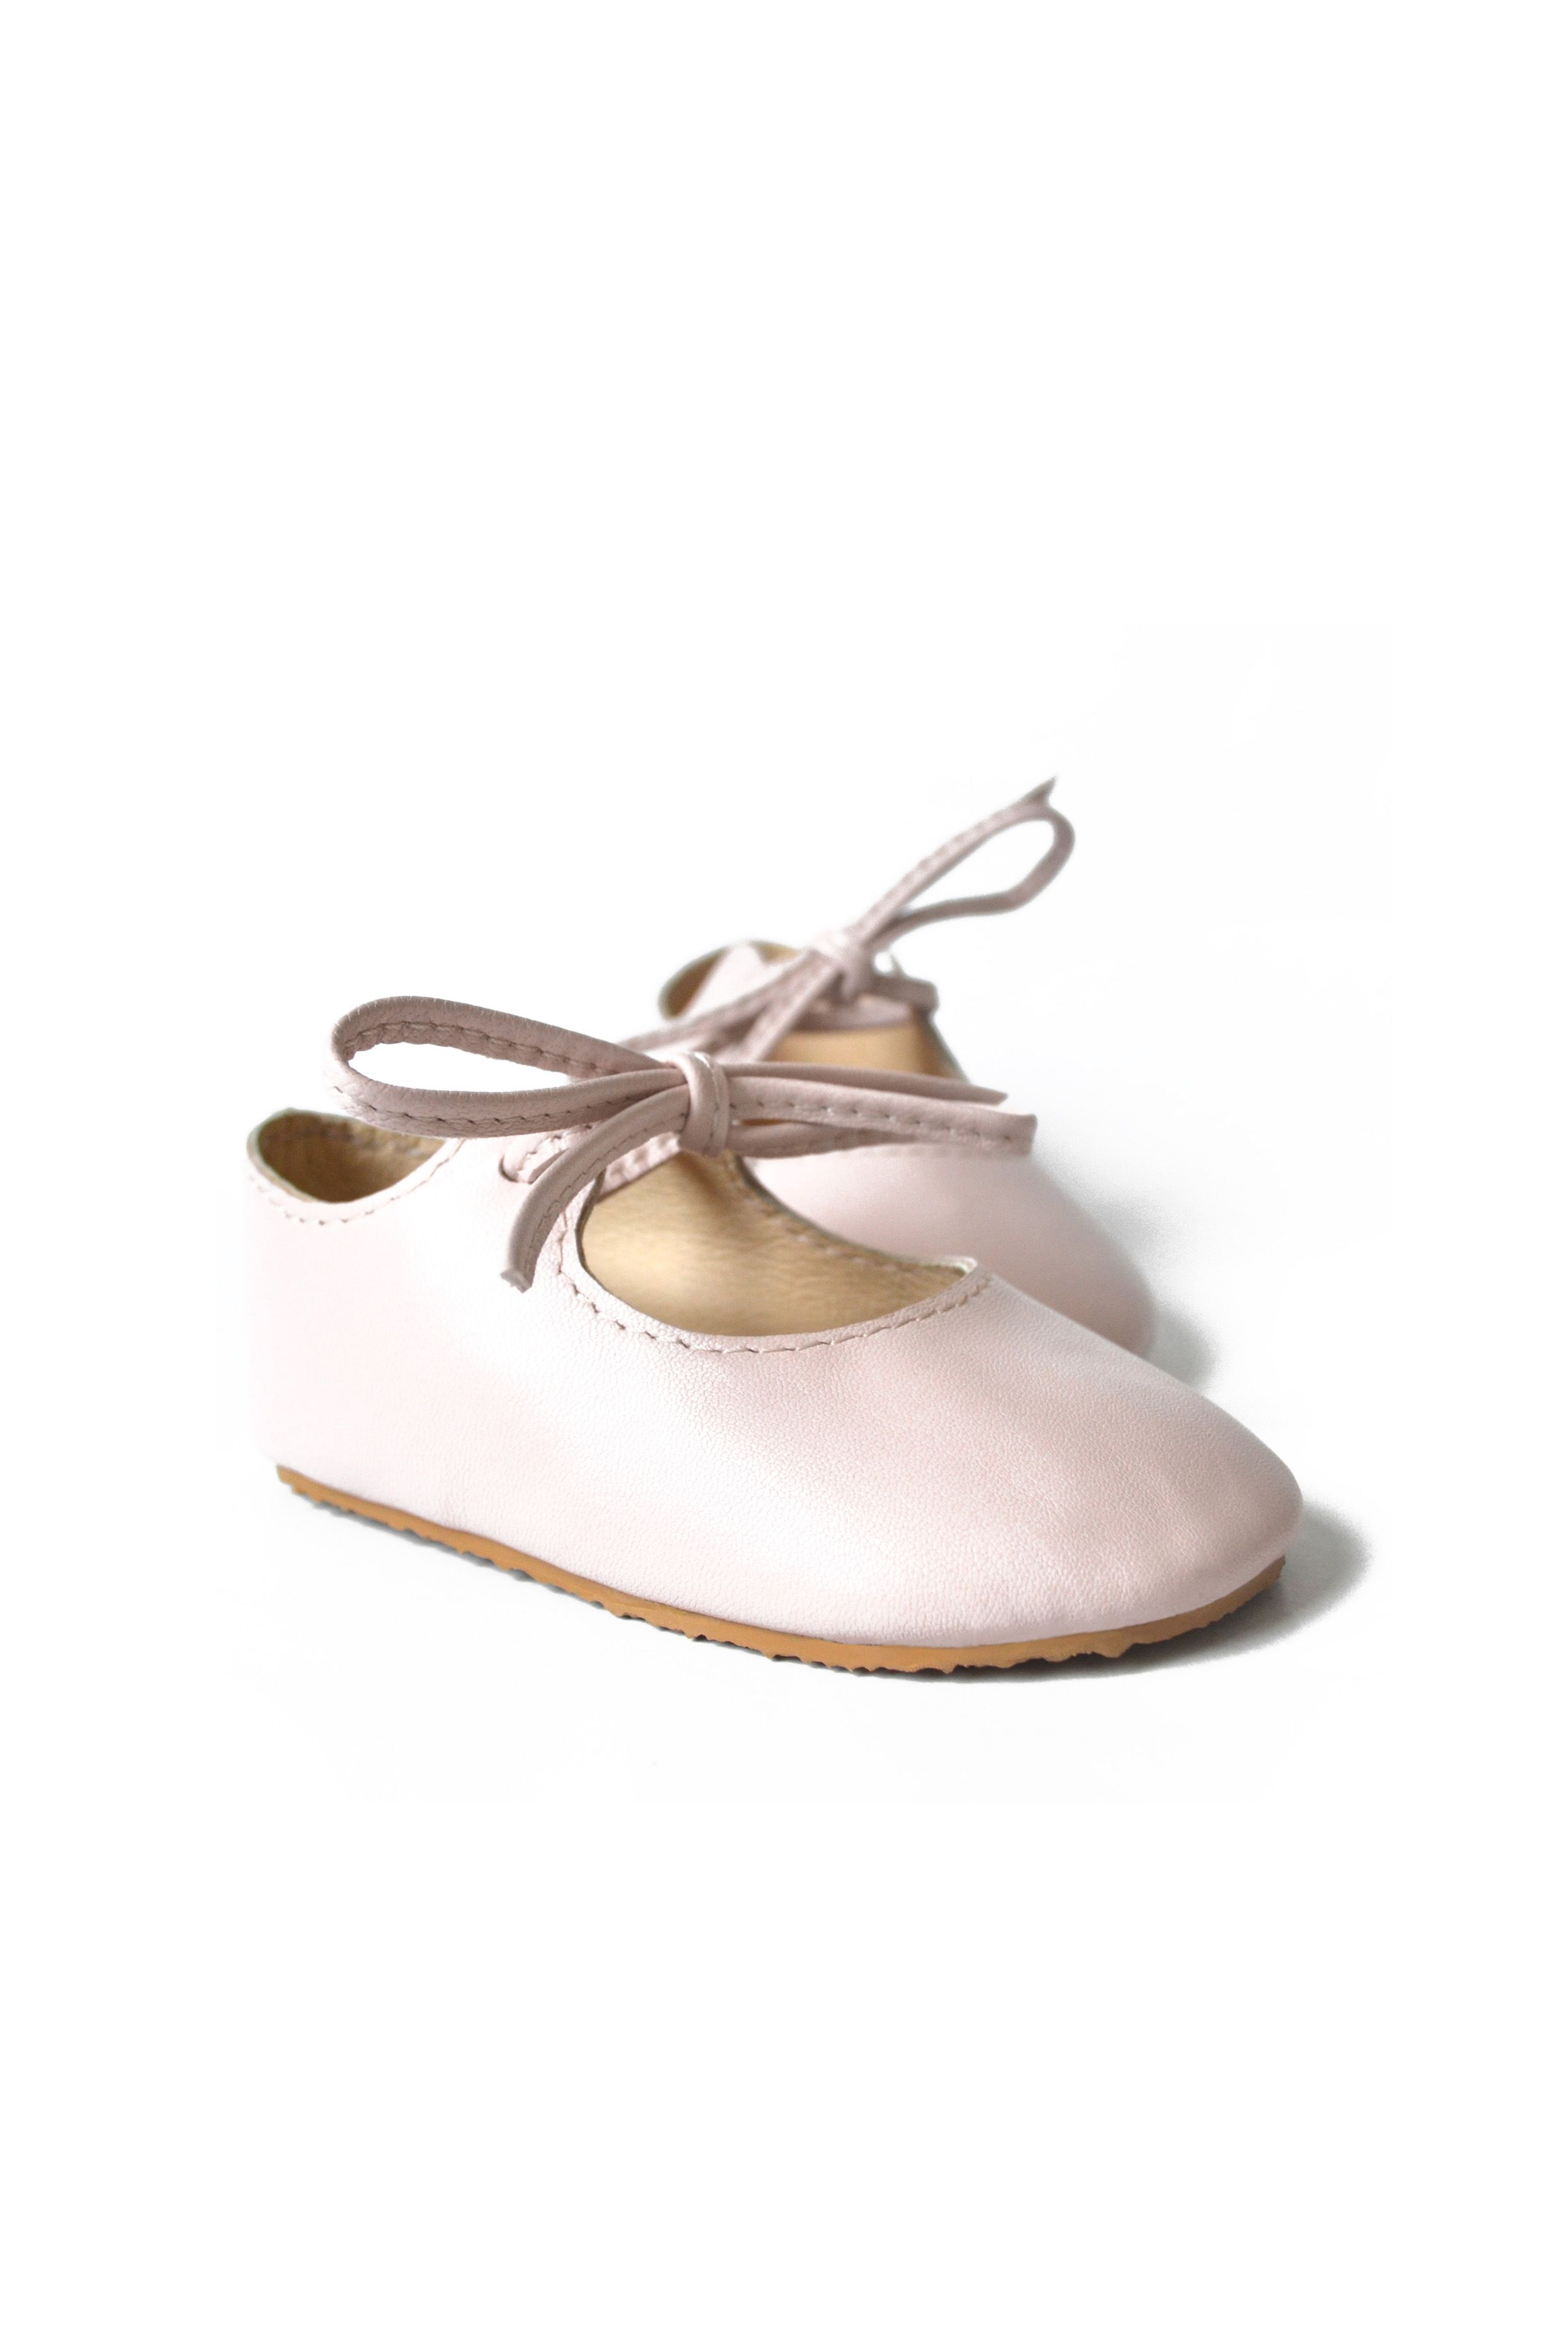 Pink dress shoes for ladies  Light pink baby girl mary janes with rubber soles by MiniMo  I am